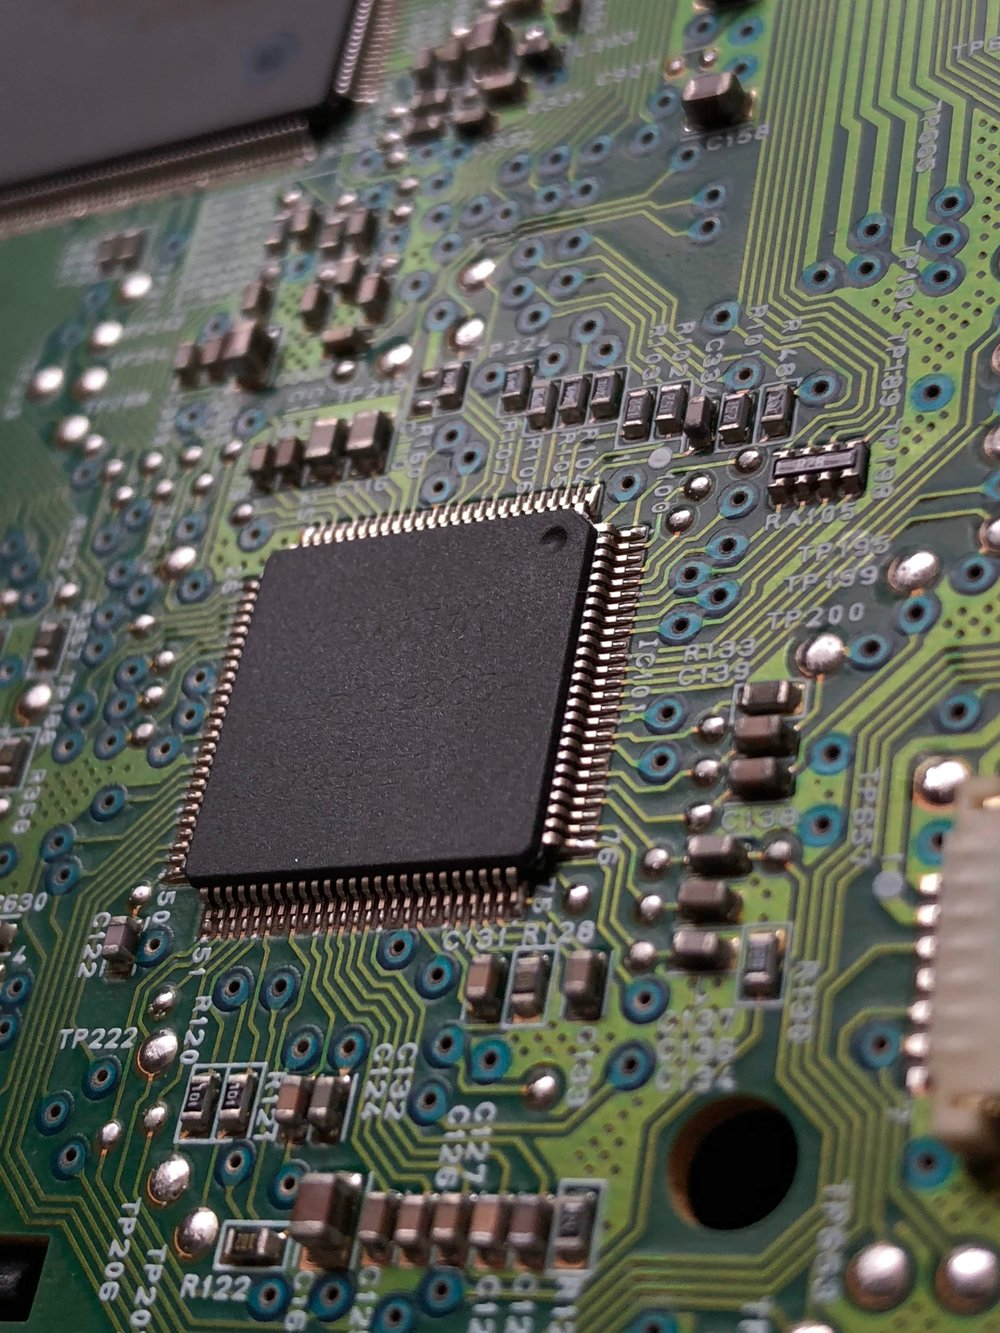 Close-up of a motherboard taken by Aler Kiv from Unsplash